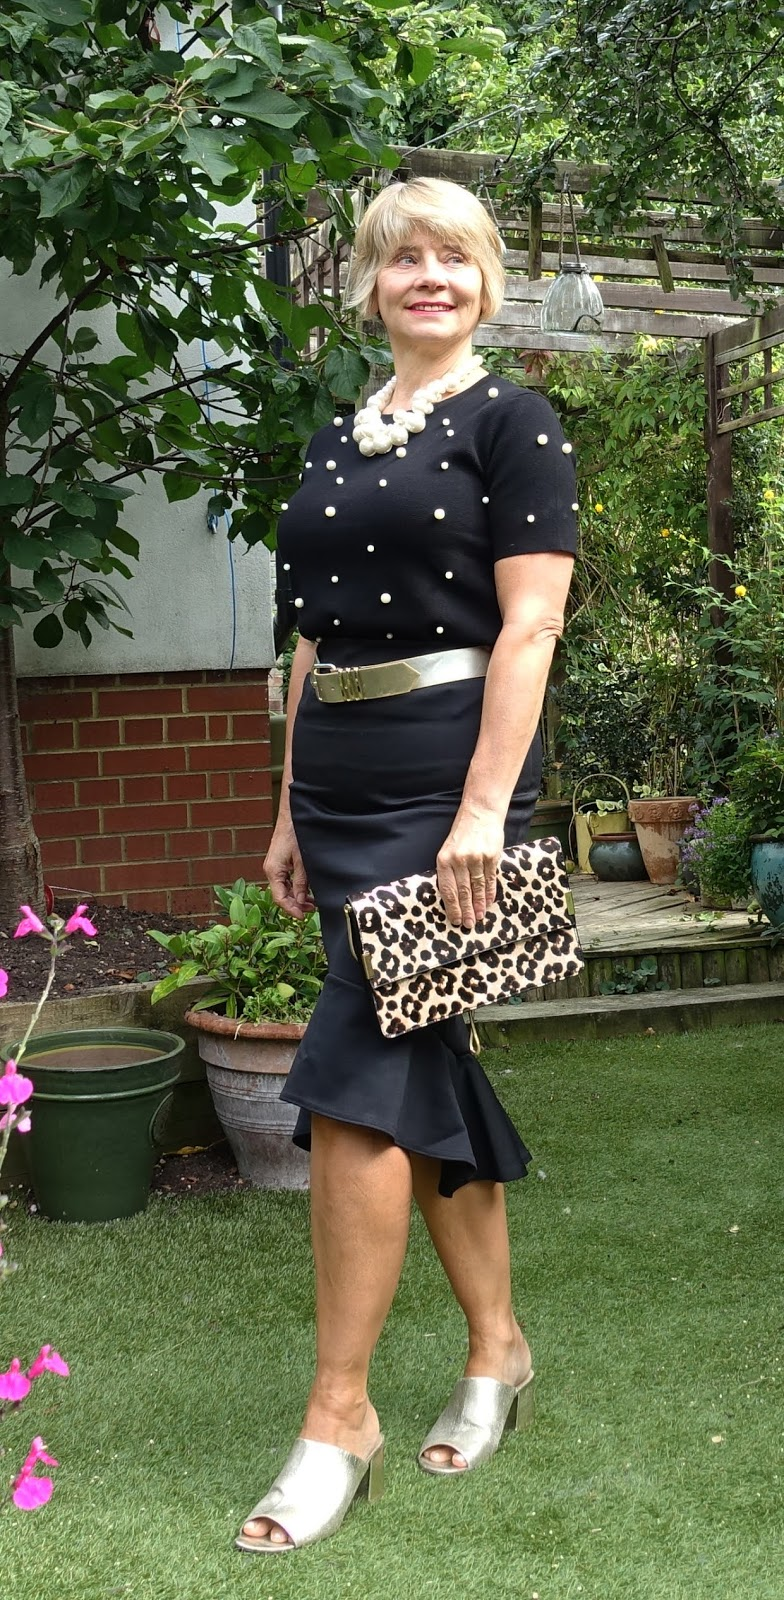 Gail Hanlon from Is This Mutton, the style blog for the over-50s, showing her signature style touches of plenty of pearls, black and a metallic bet